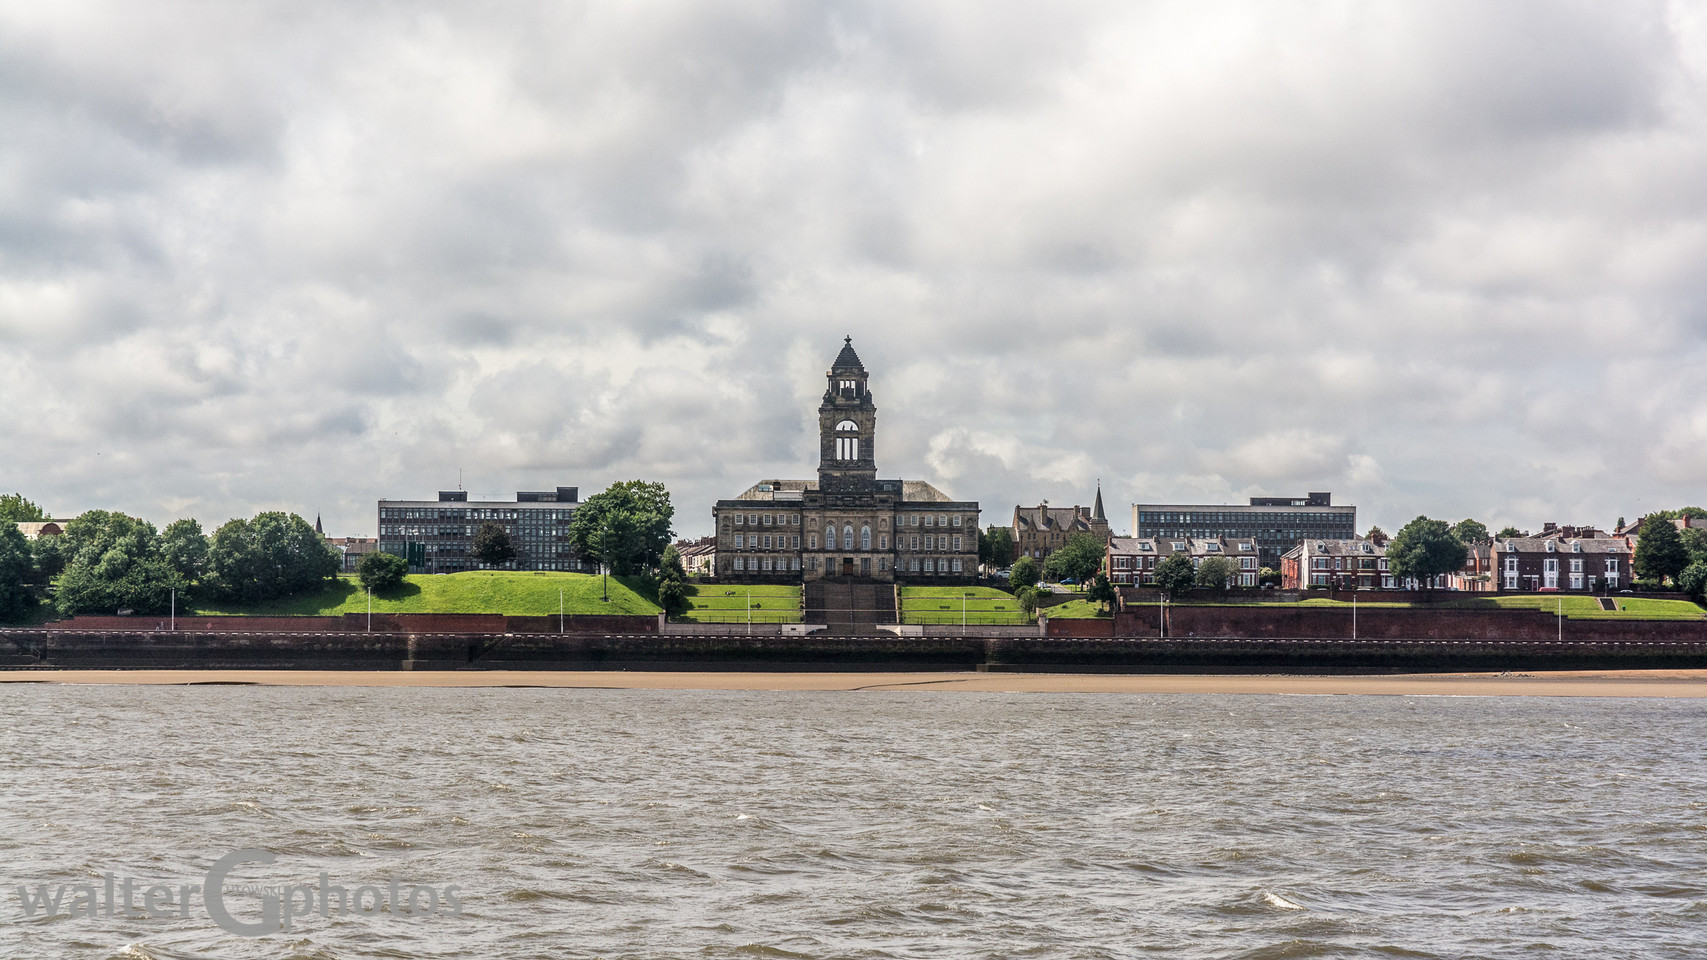 Wirral Council, Liverpool, England